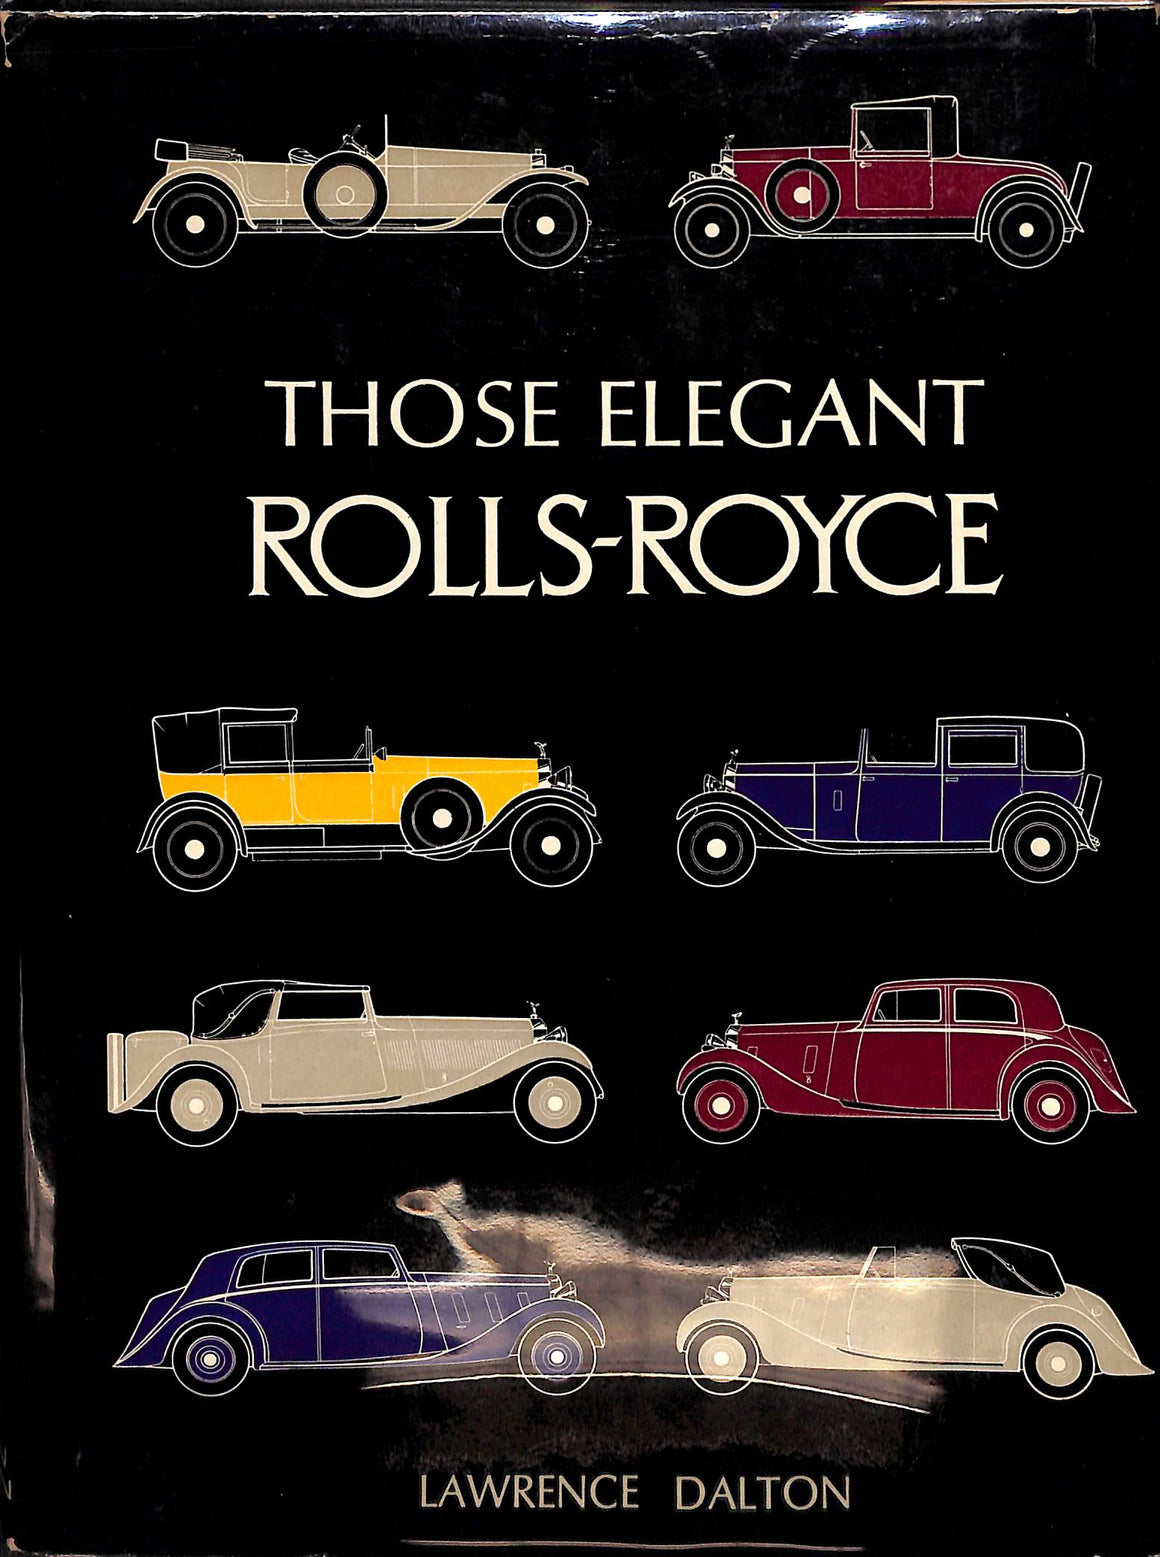 Those Elegant Rolls-Royce